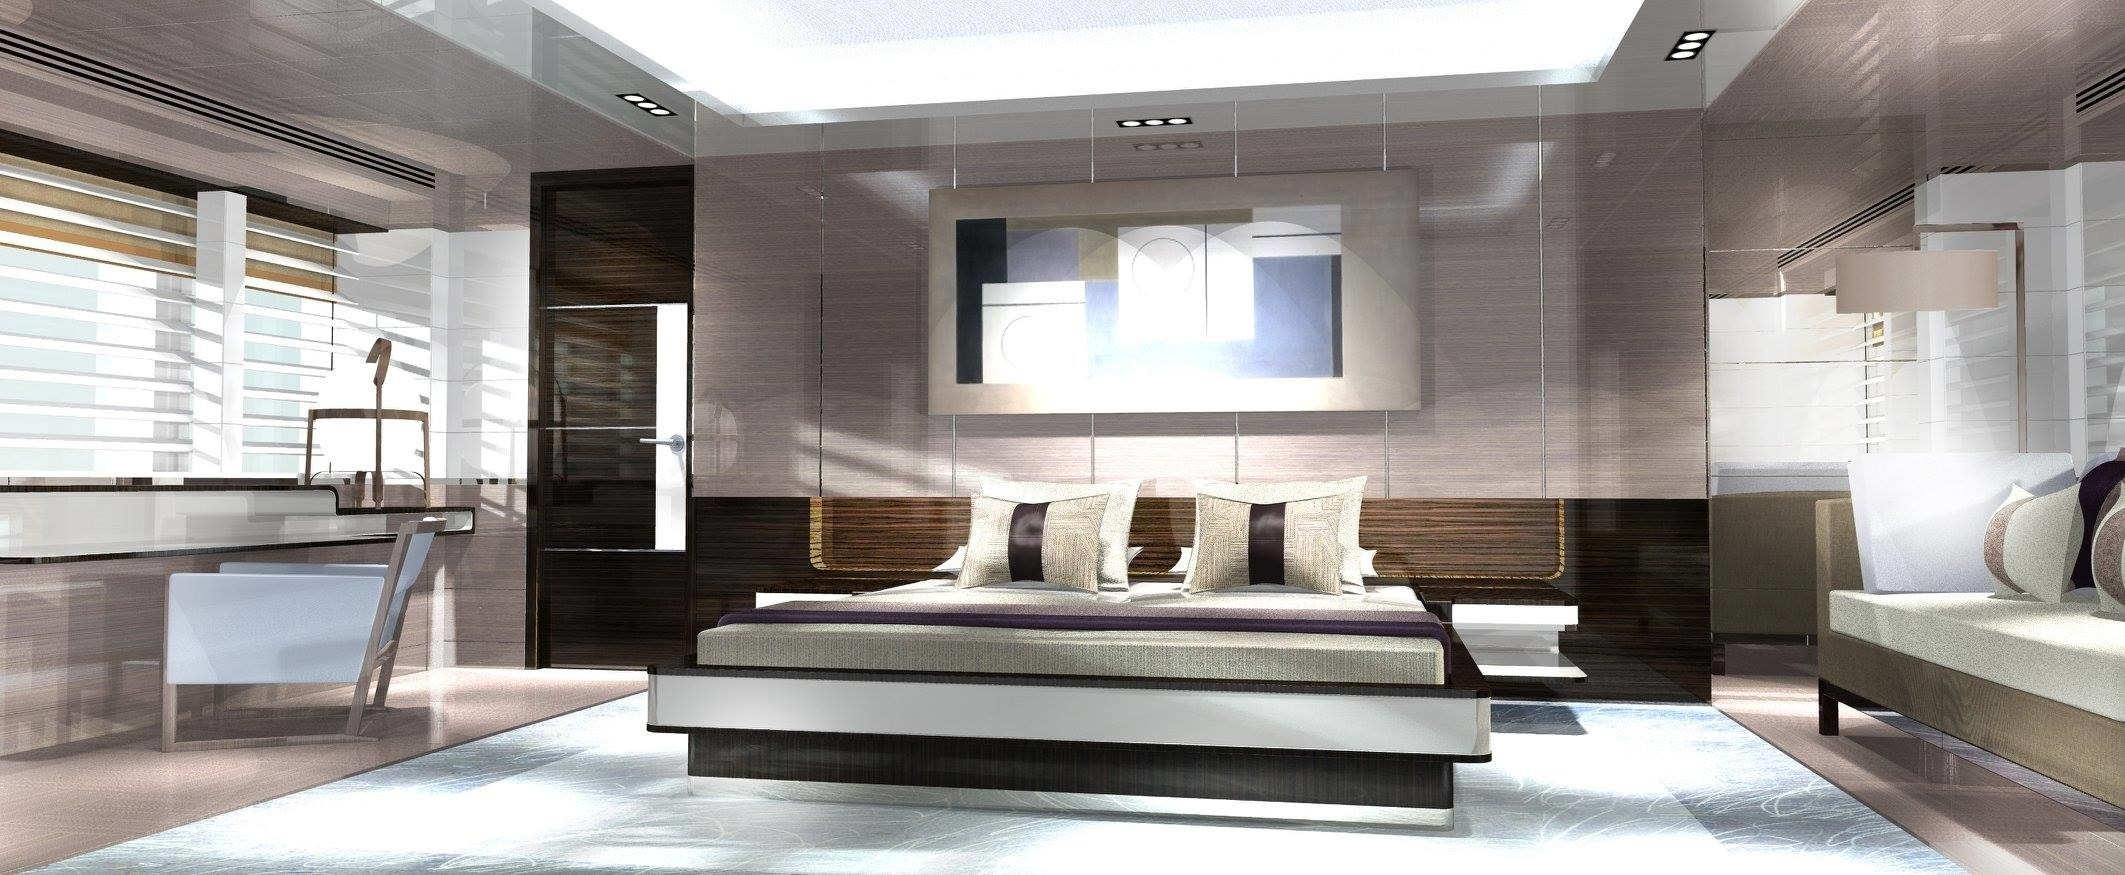 rendering owner suite